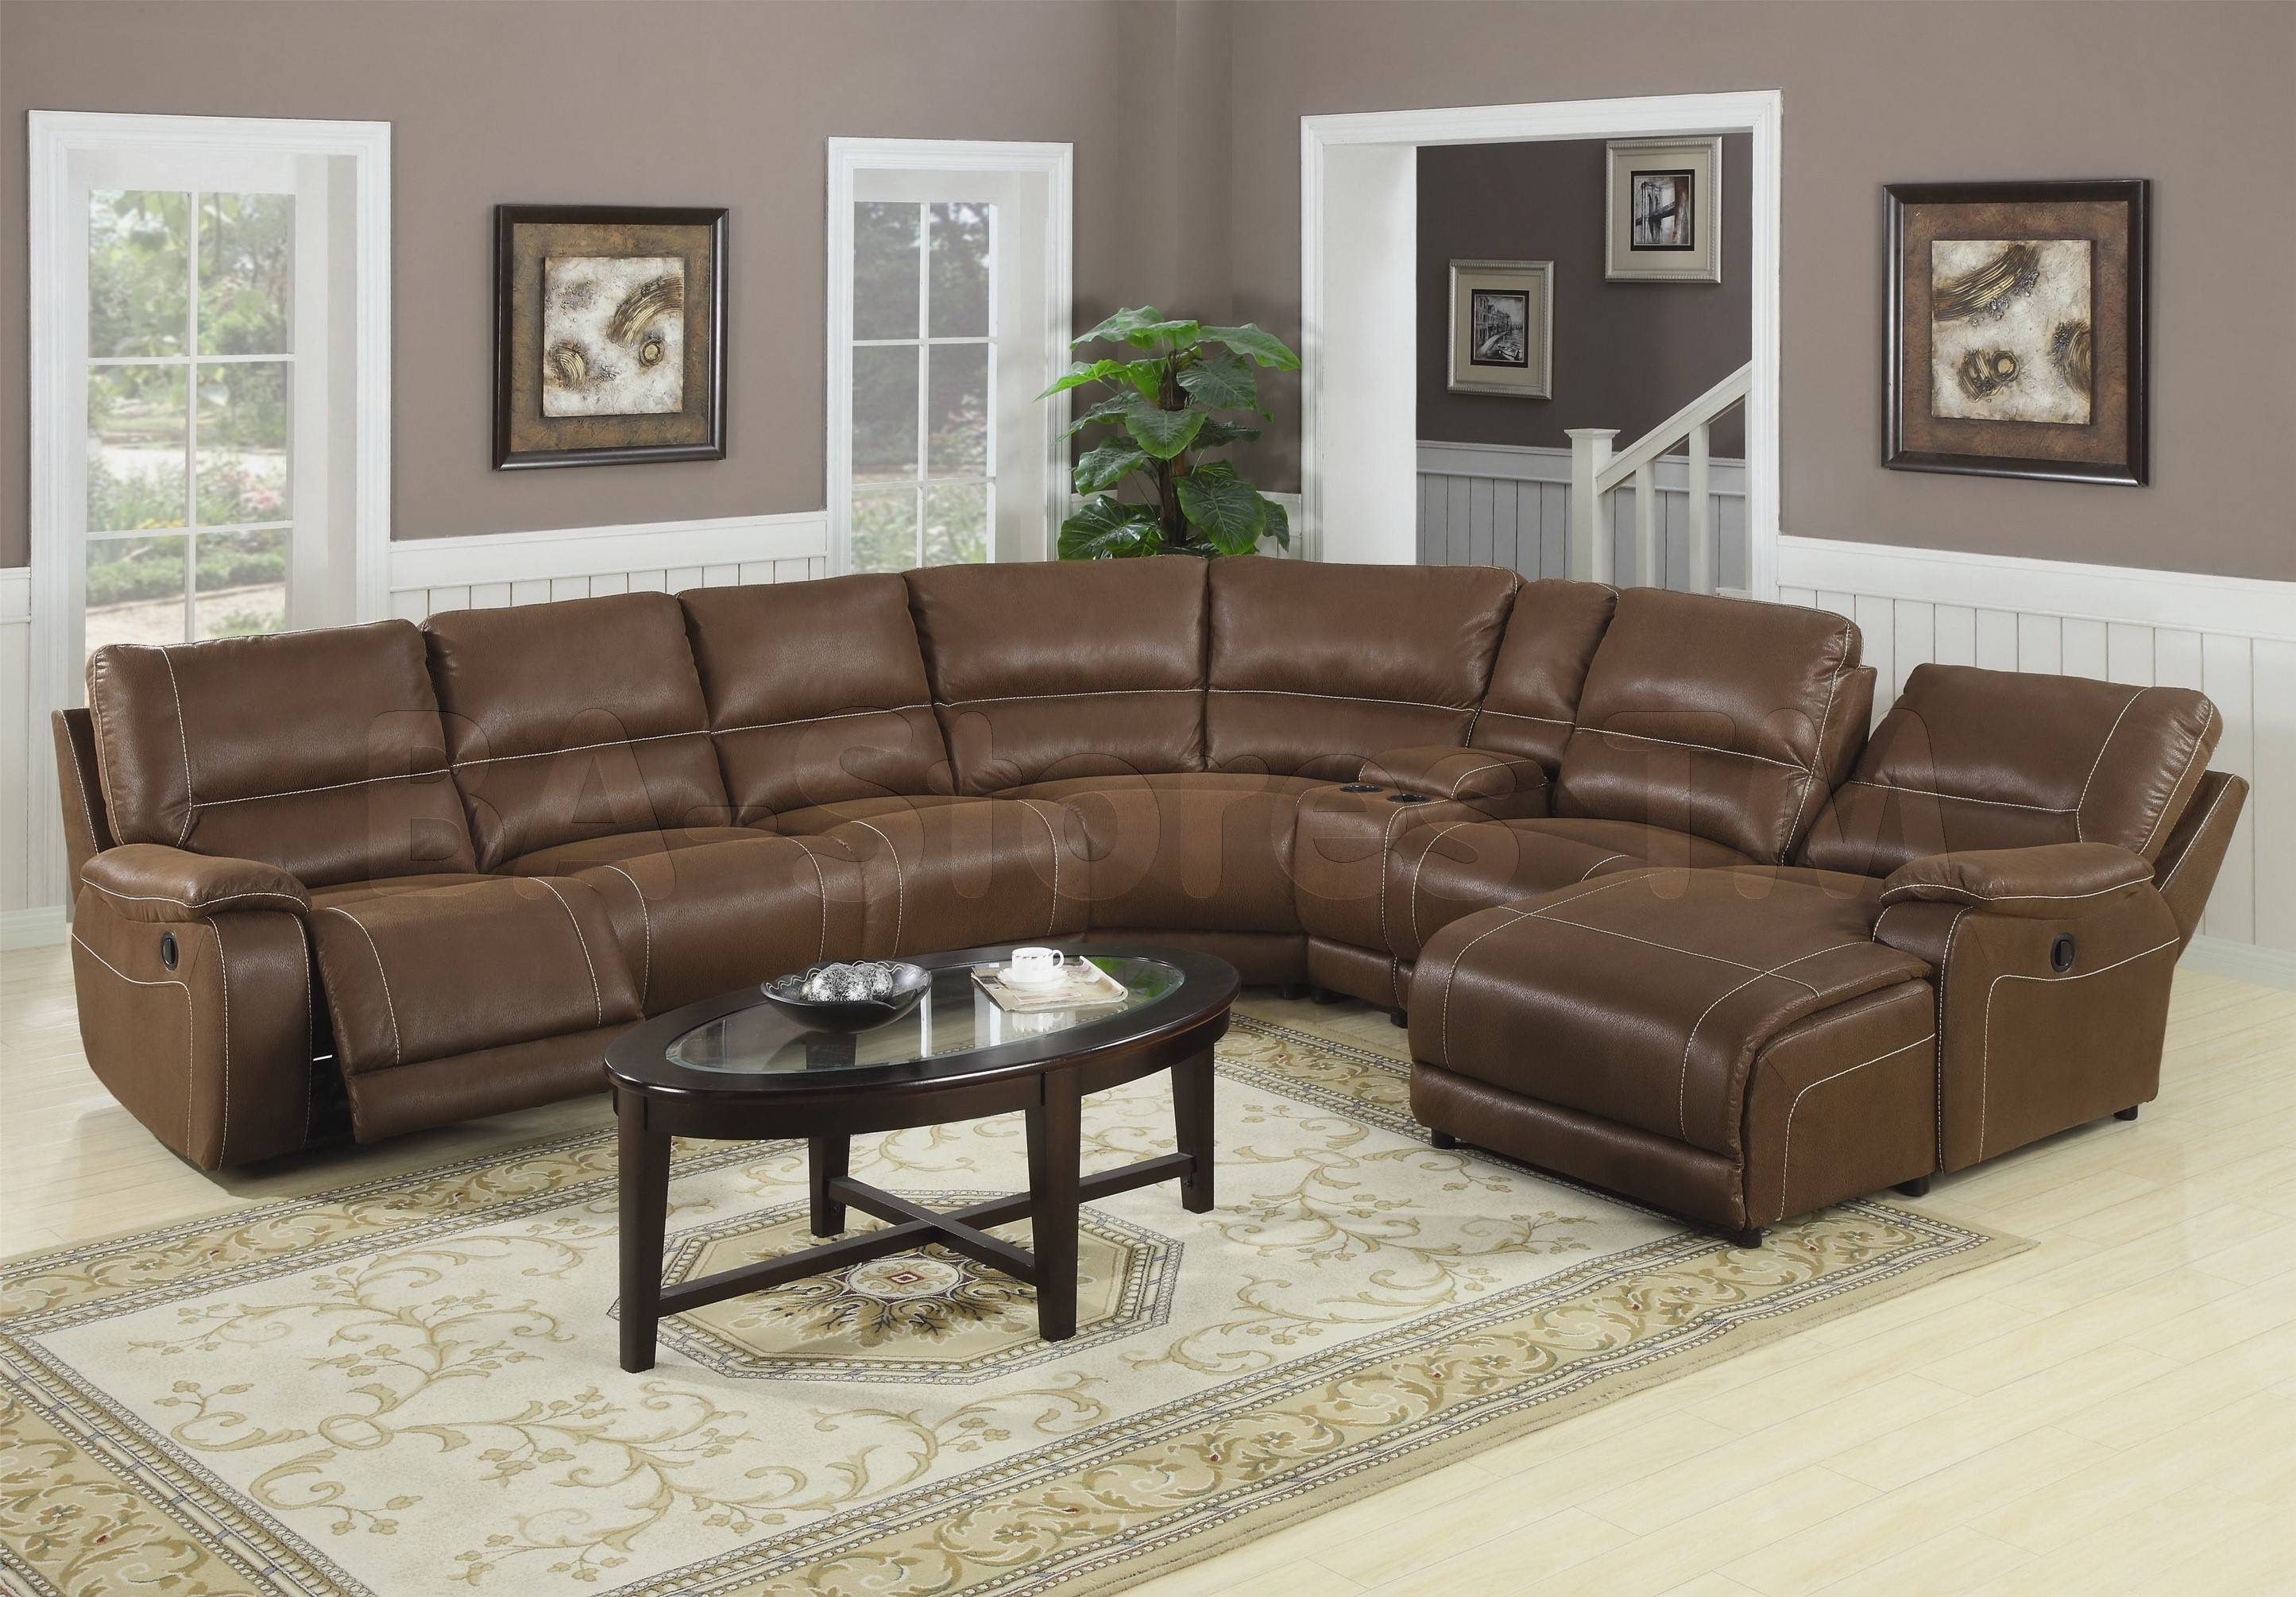 Furniture: Interesting Living Room Interior Using Large Sectional intended for Extra Large Leather Sectional Sofas (Image 11 of 15)